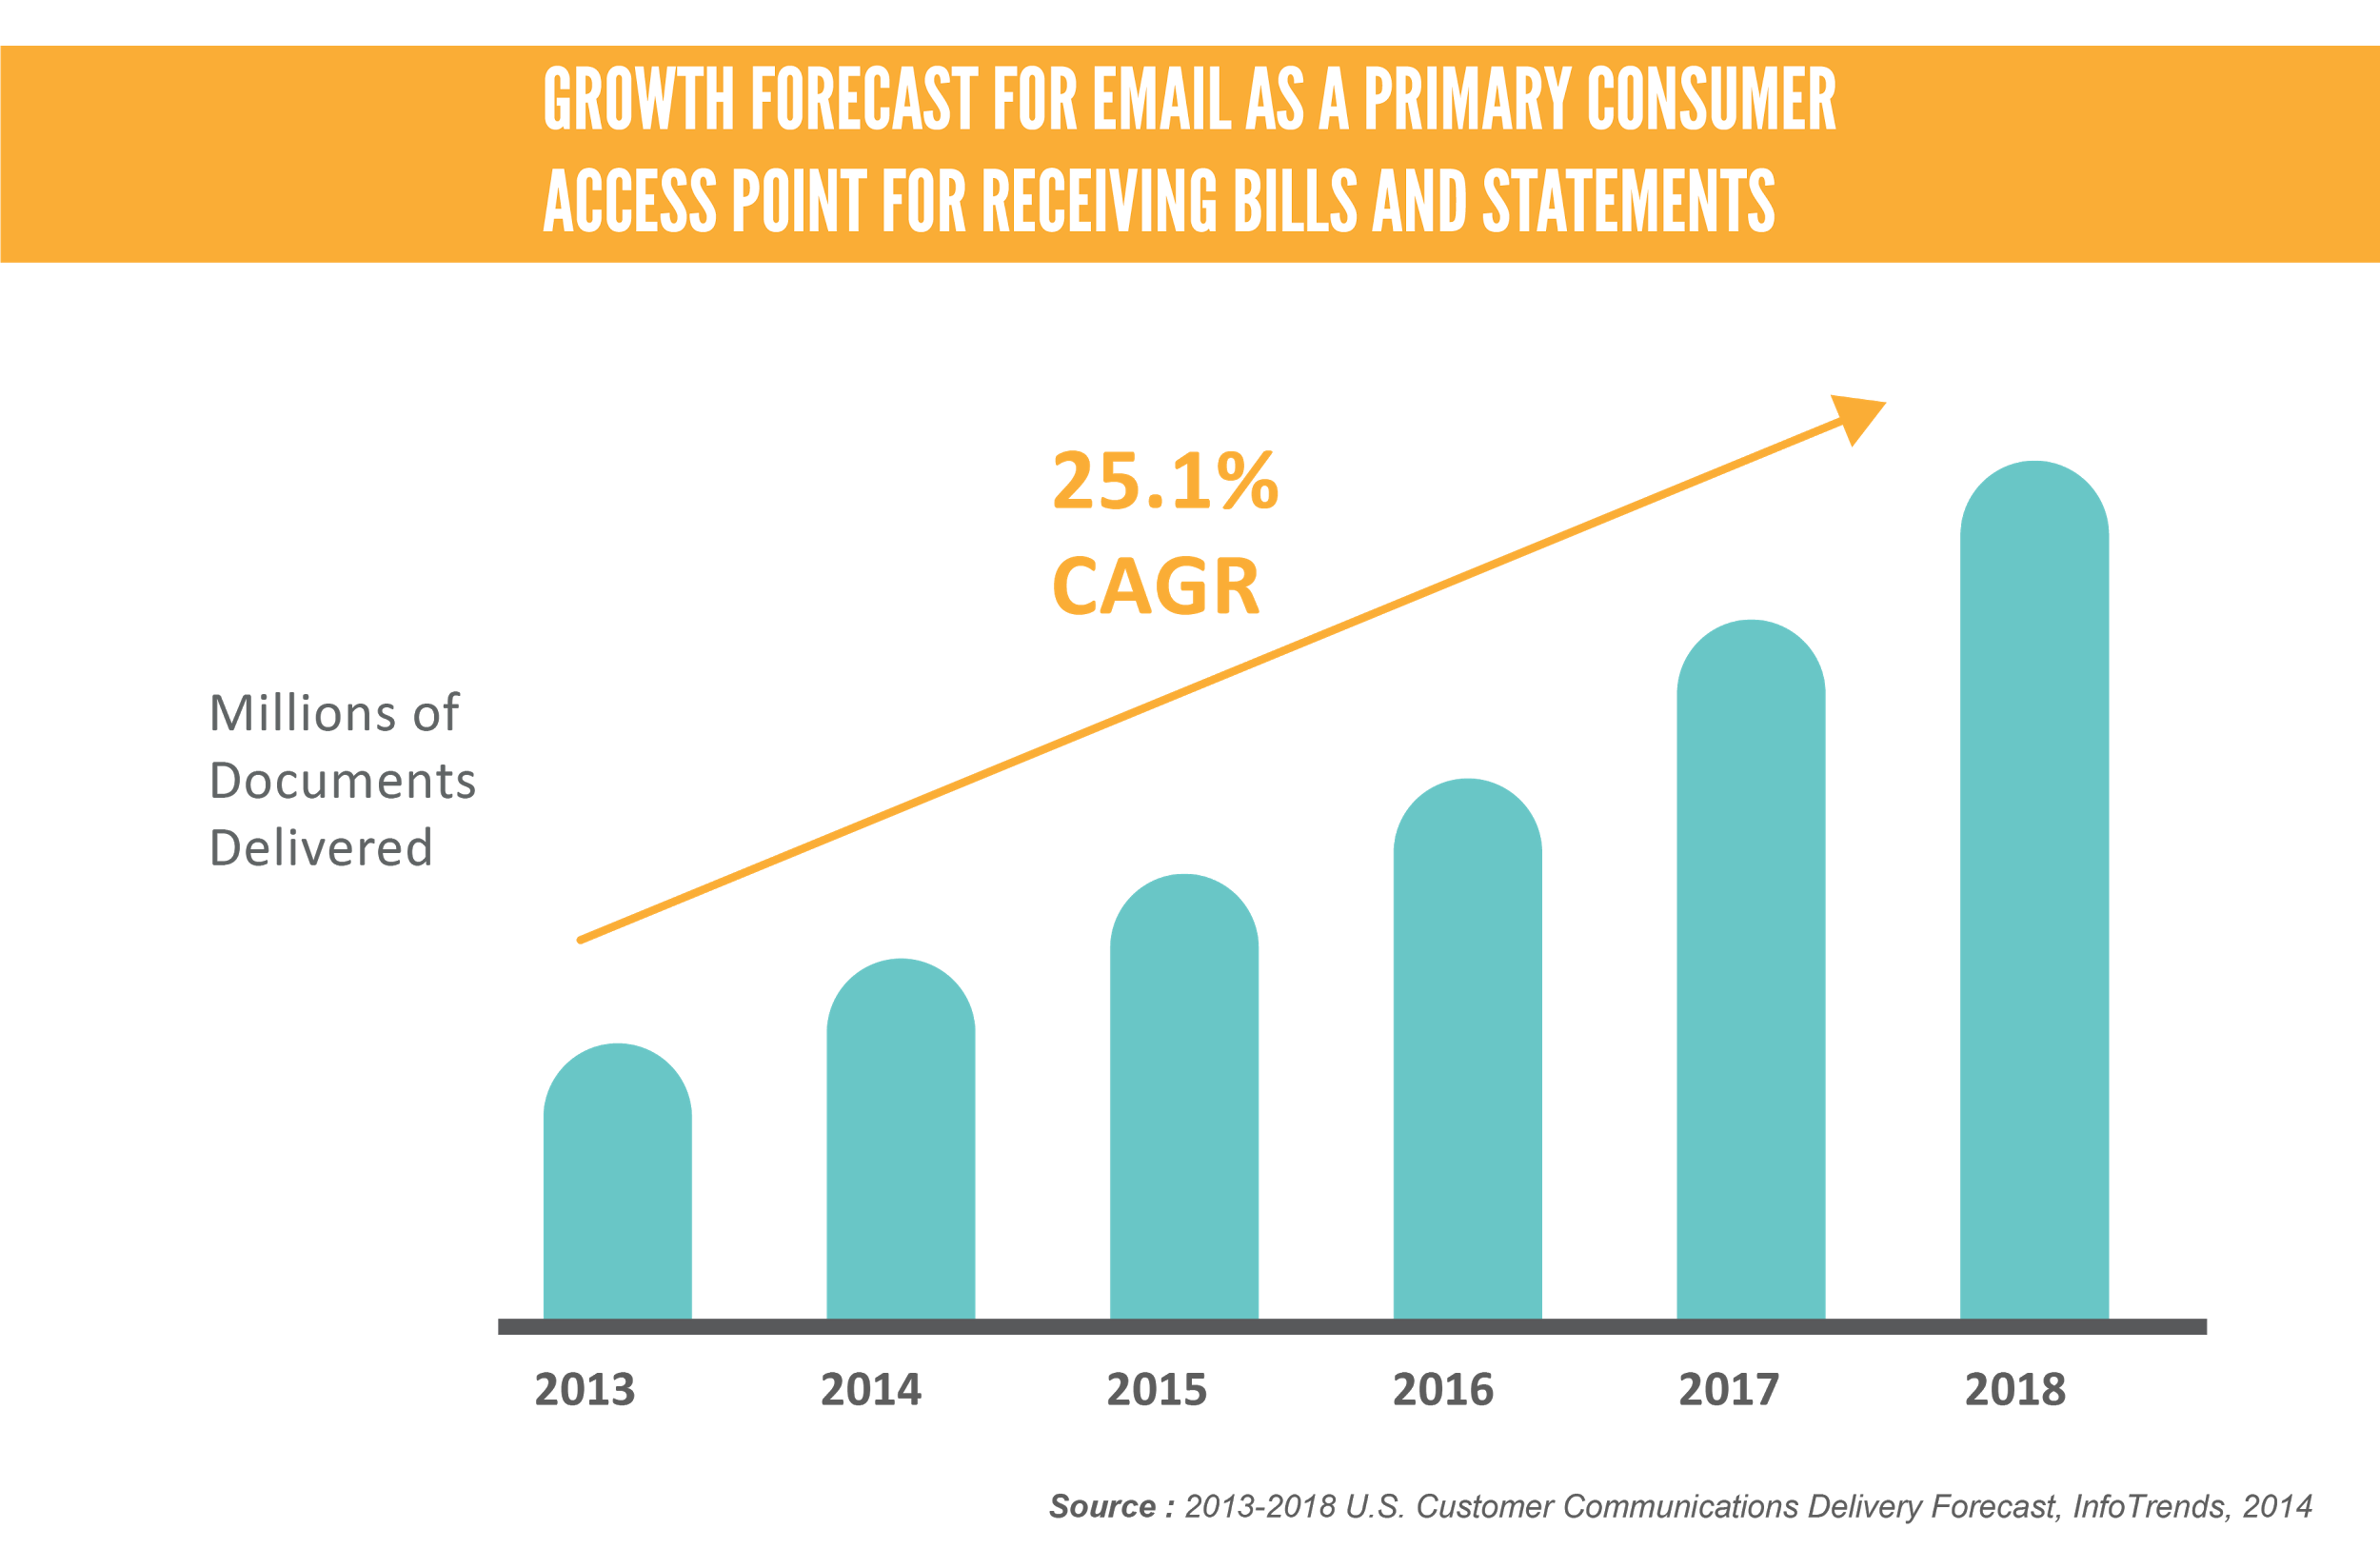 Growth forecast for email as a primary consumer access point